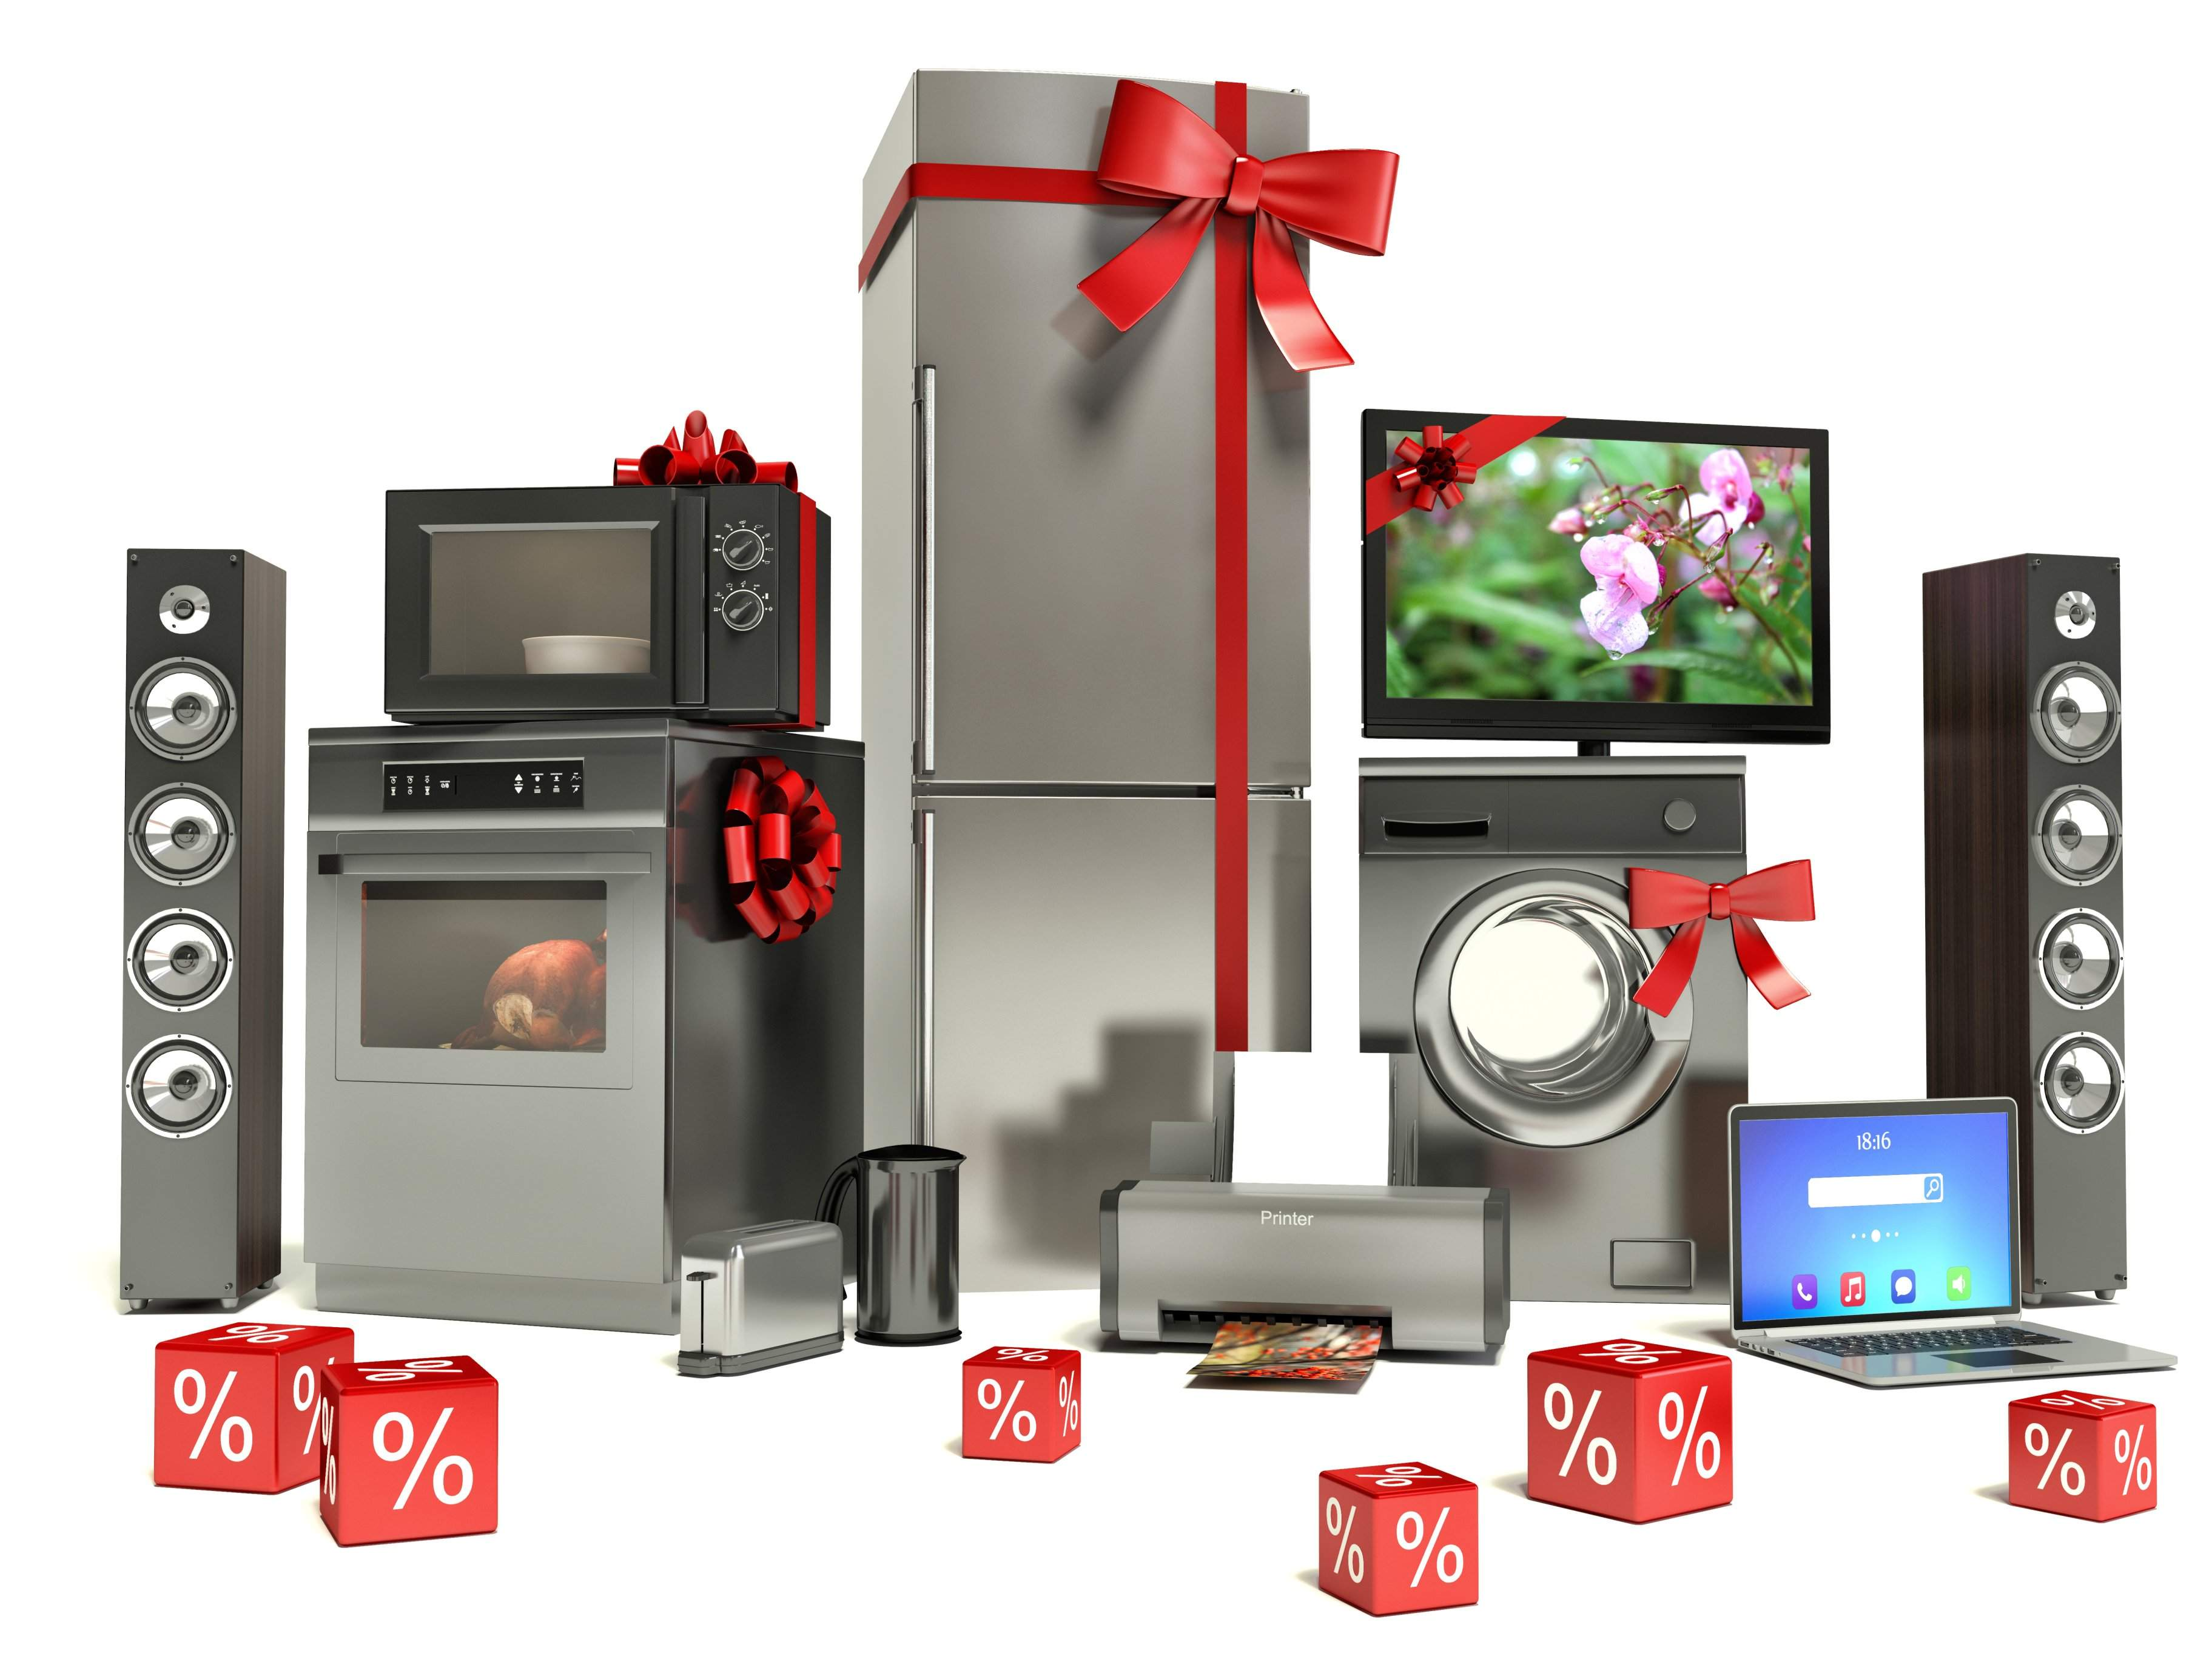 Electronics appliances for your home - All About Shopping Trends